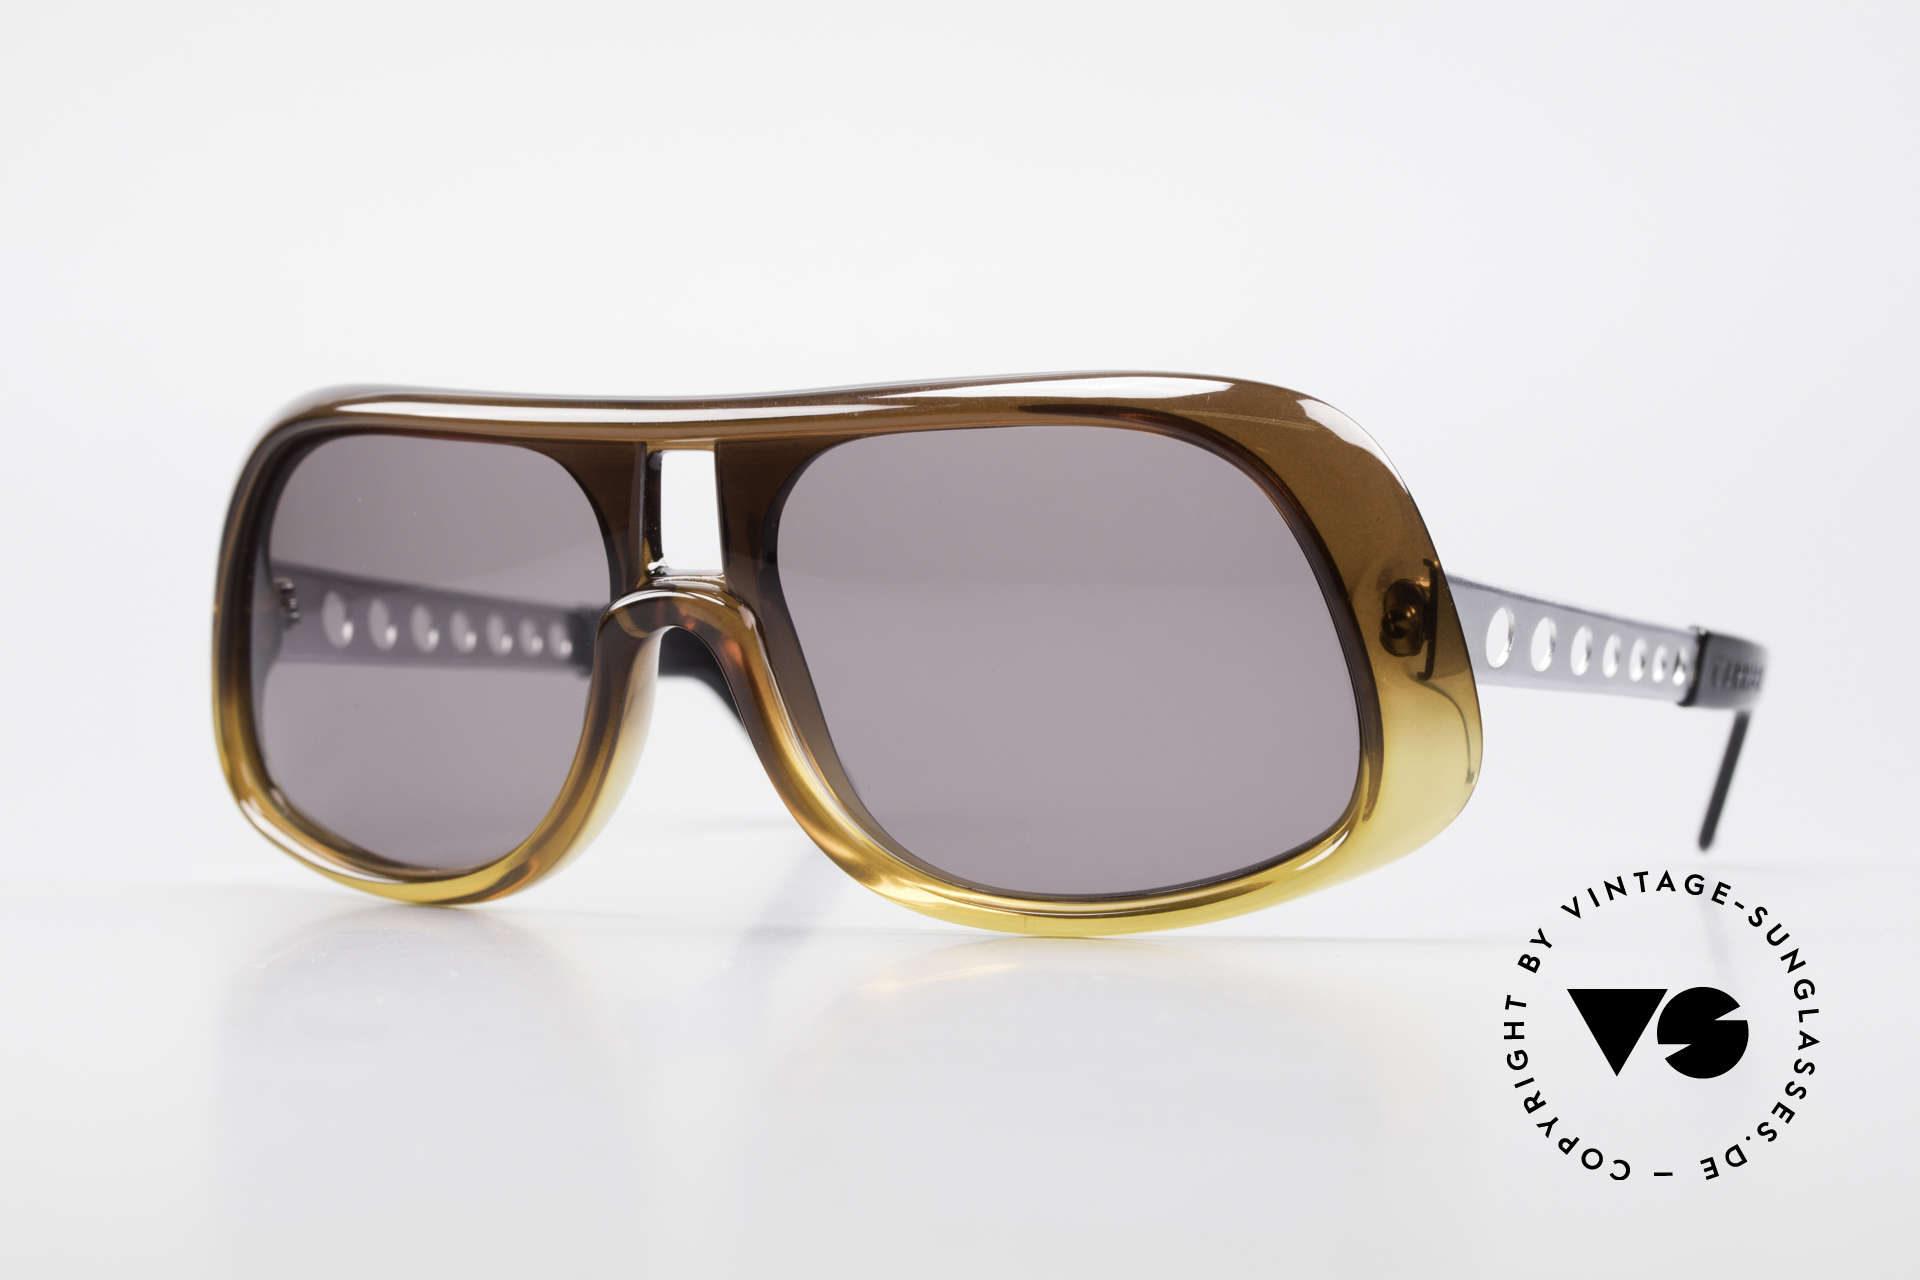 Carrera 549 Leo DiCaprio Movie Sunglasses, very old vintage Carrera sunglasses from 1972/73, Made for Men